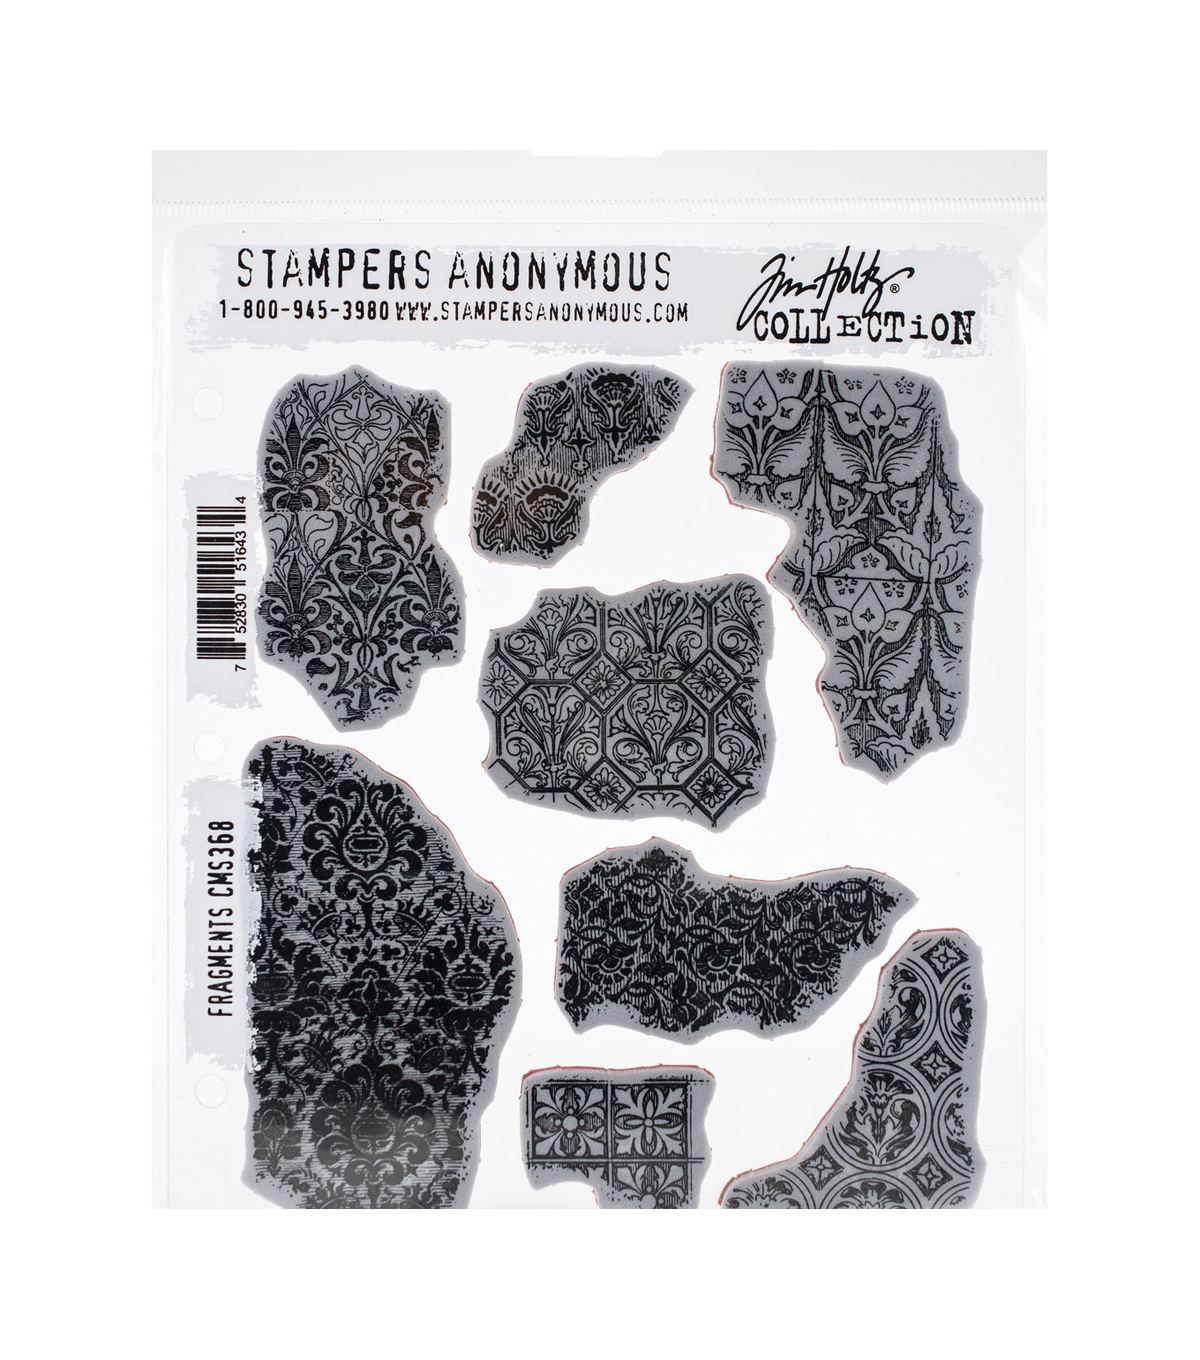 Tim Holtz Cling Stamps 7\u0027\u0027X8.5\u0027\u0027-Fragments